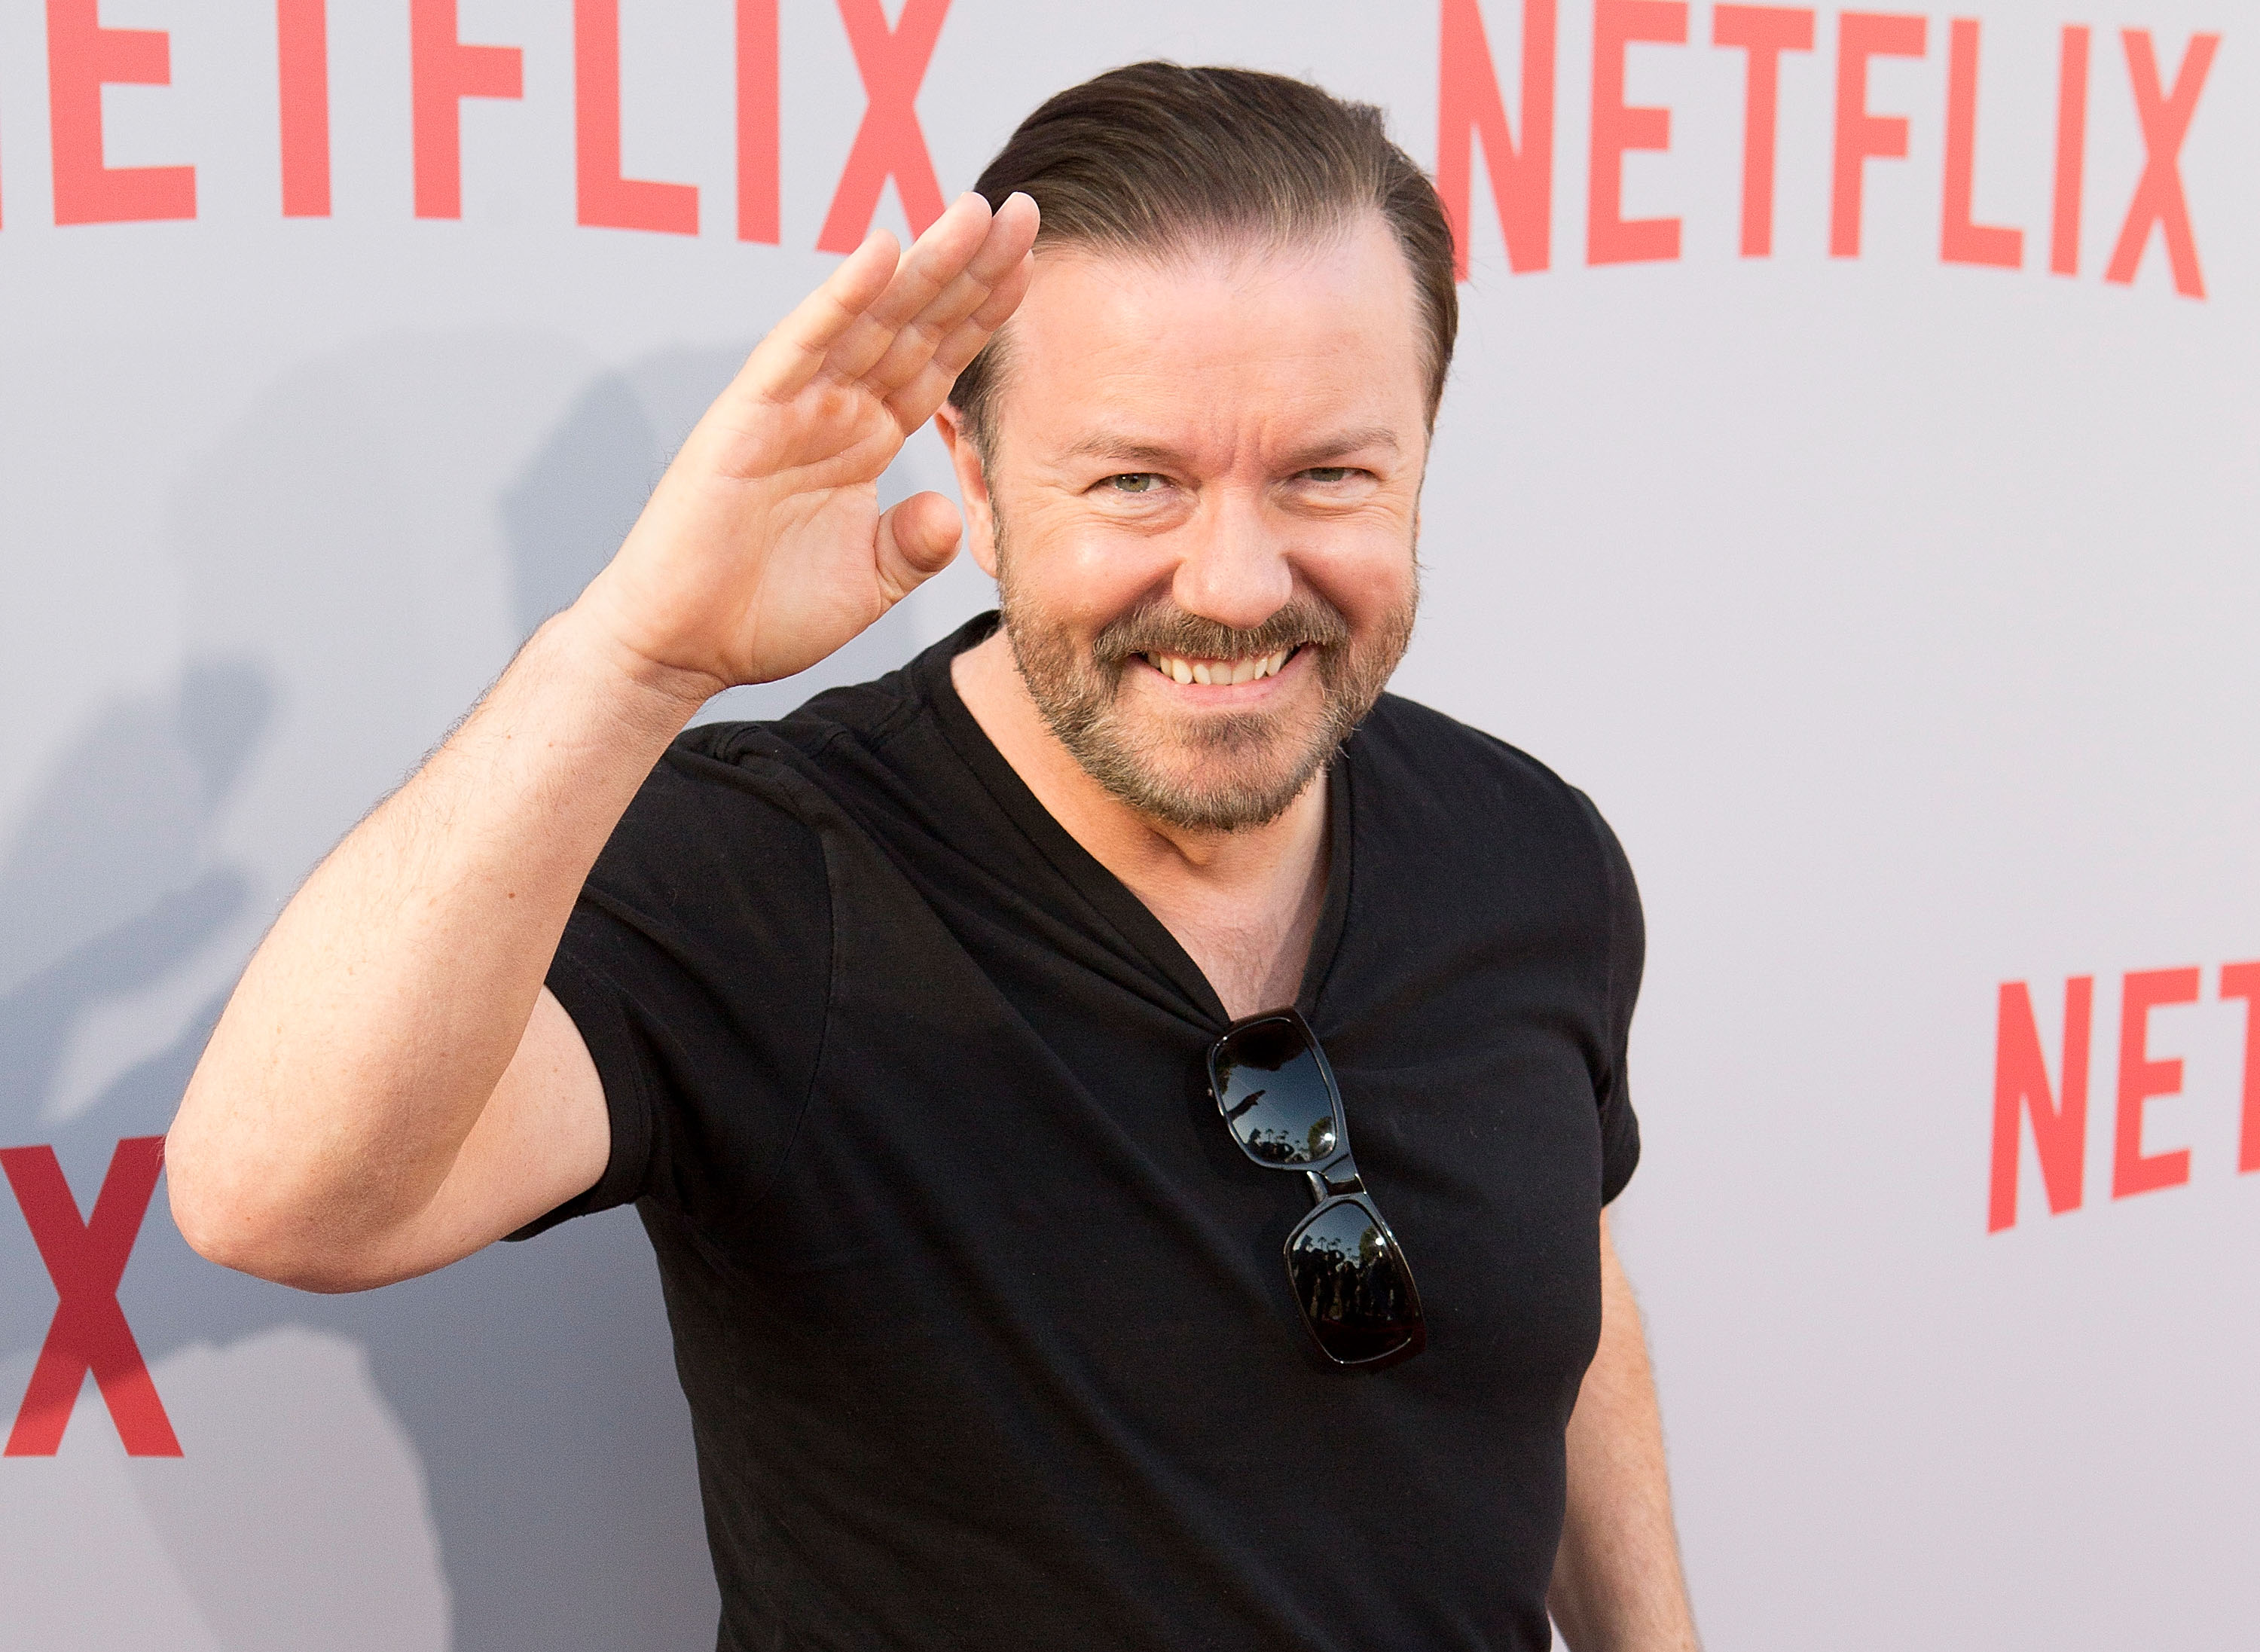 Ricky Gervais is seen on April 8, 2015 in Hollywood, Calif.